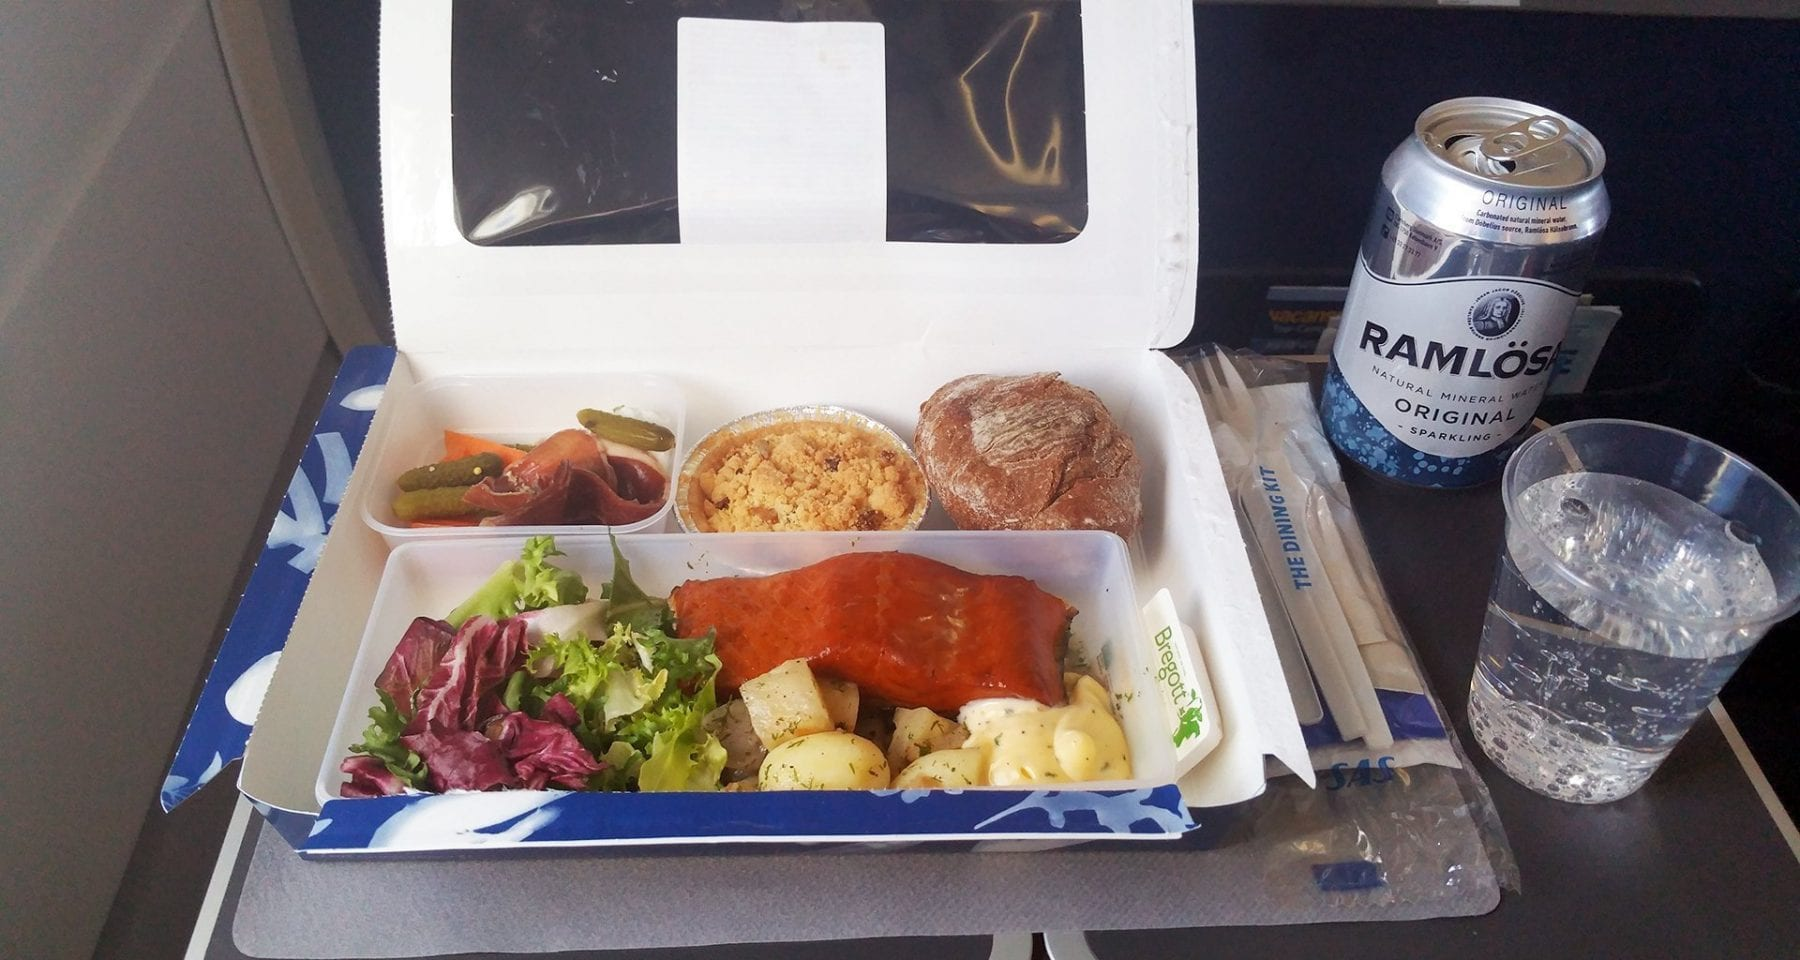 SAS Scandinavian airlines economy class paid meal